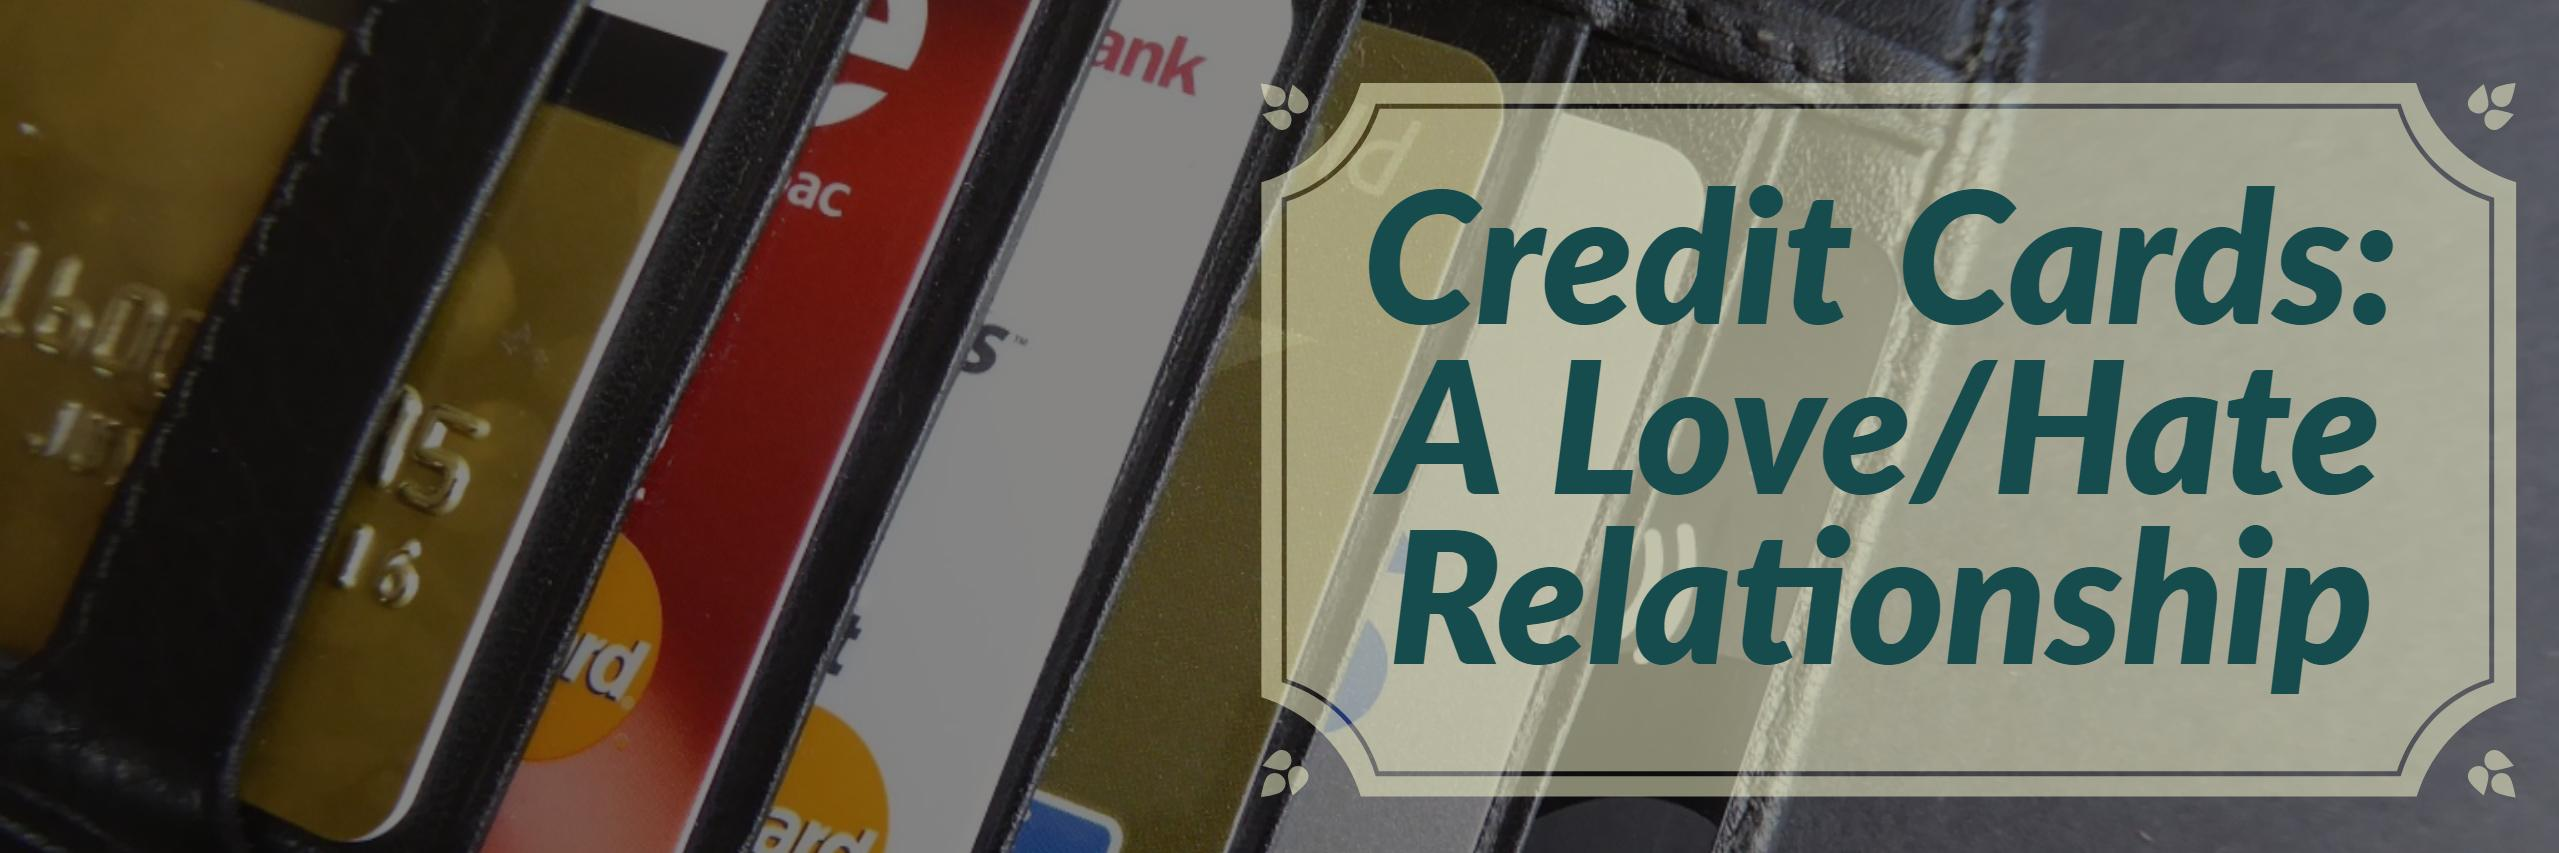 Credit Cards: A Love/Hate Relationship Thumbnail